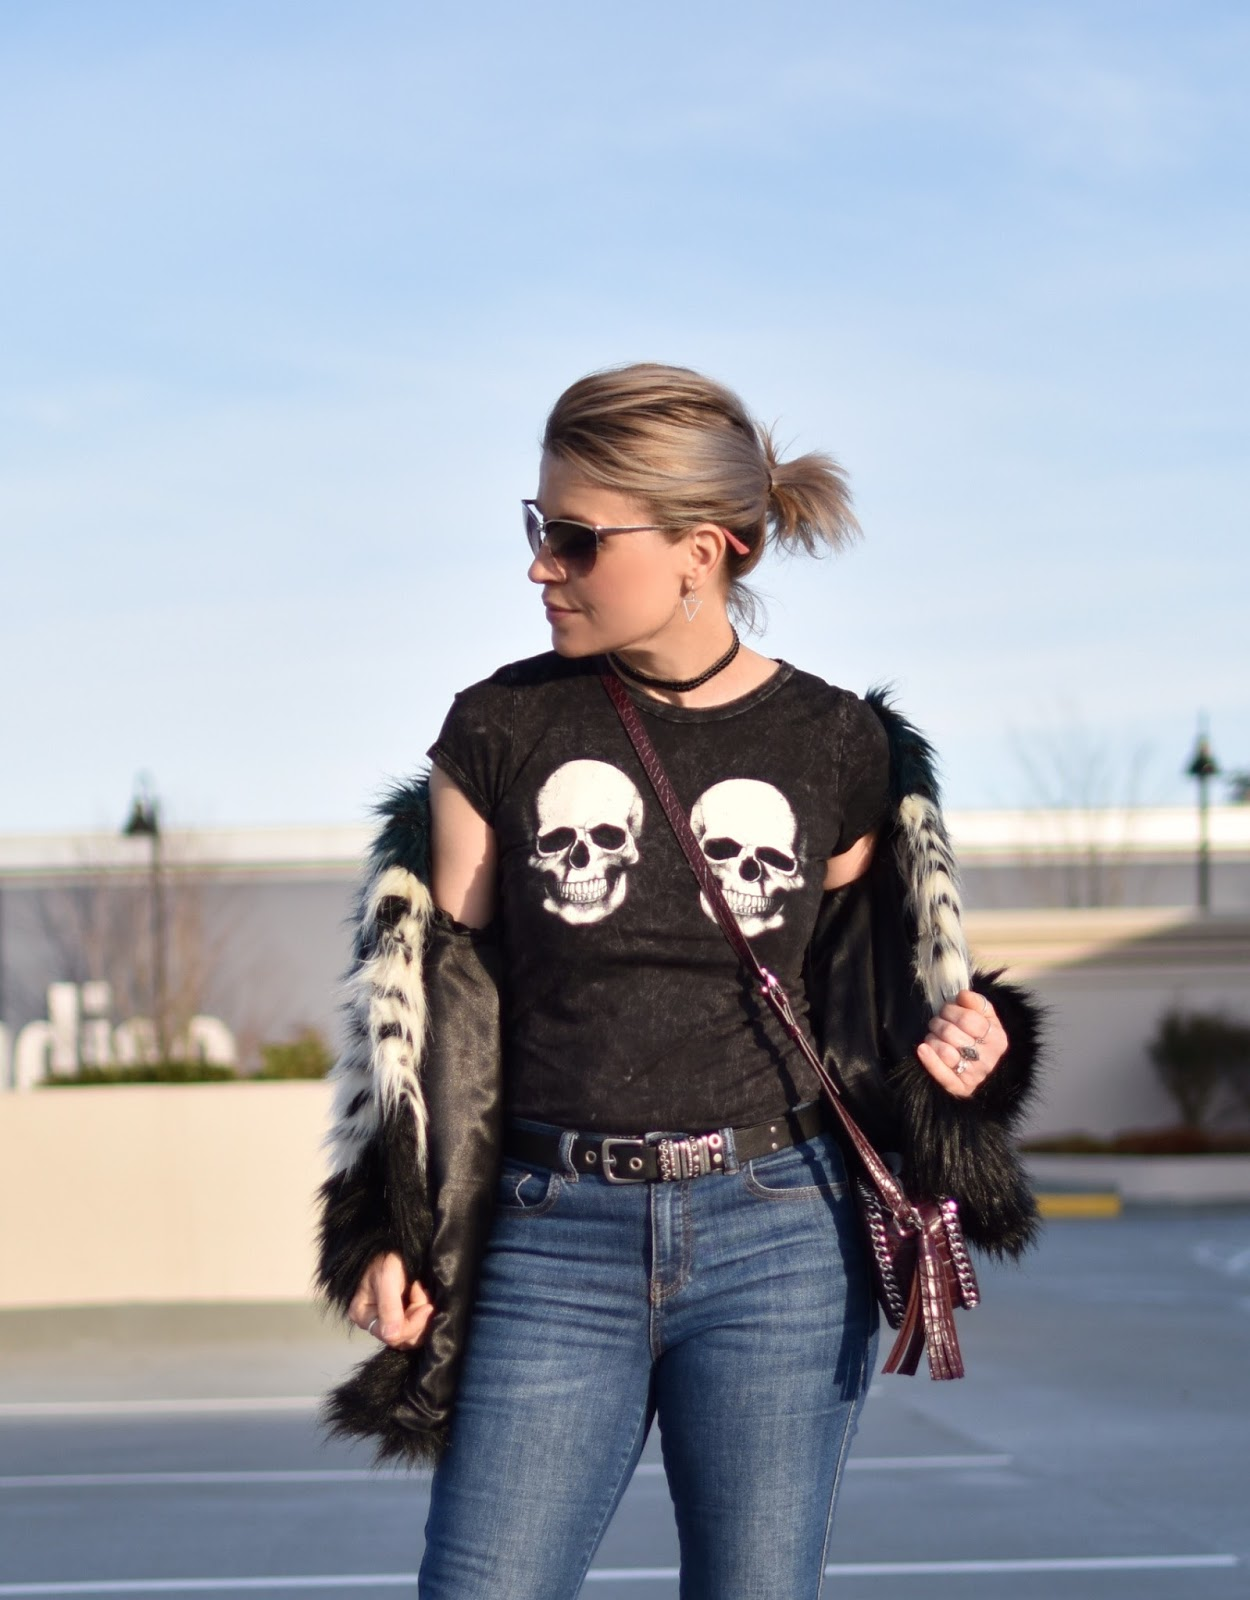 Monika Faulkner outfit inspiration - skull-motif tee, faux-fur jacket, sunglasses, cross-body bag